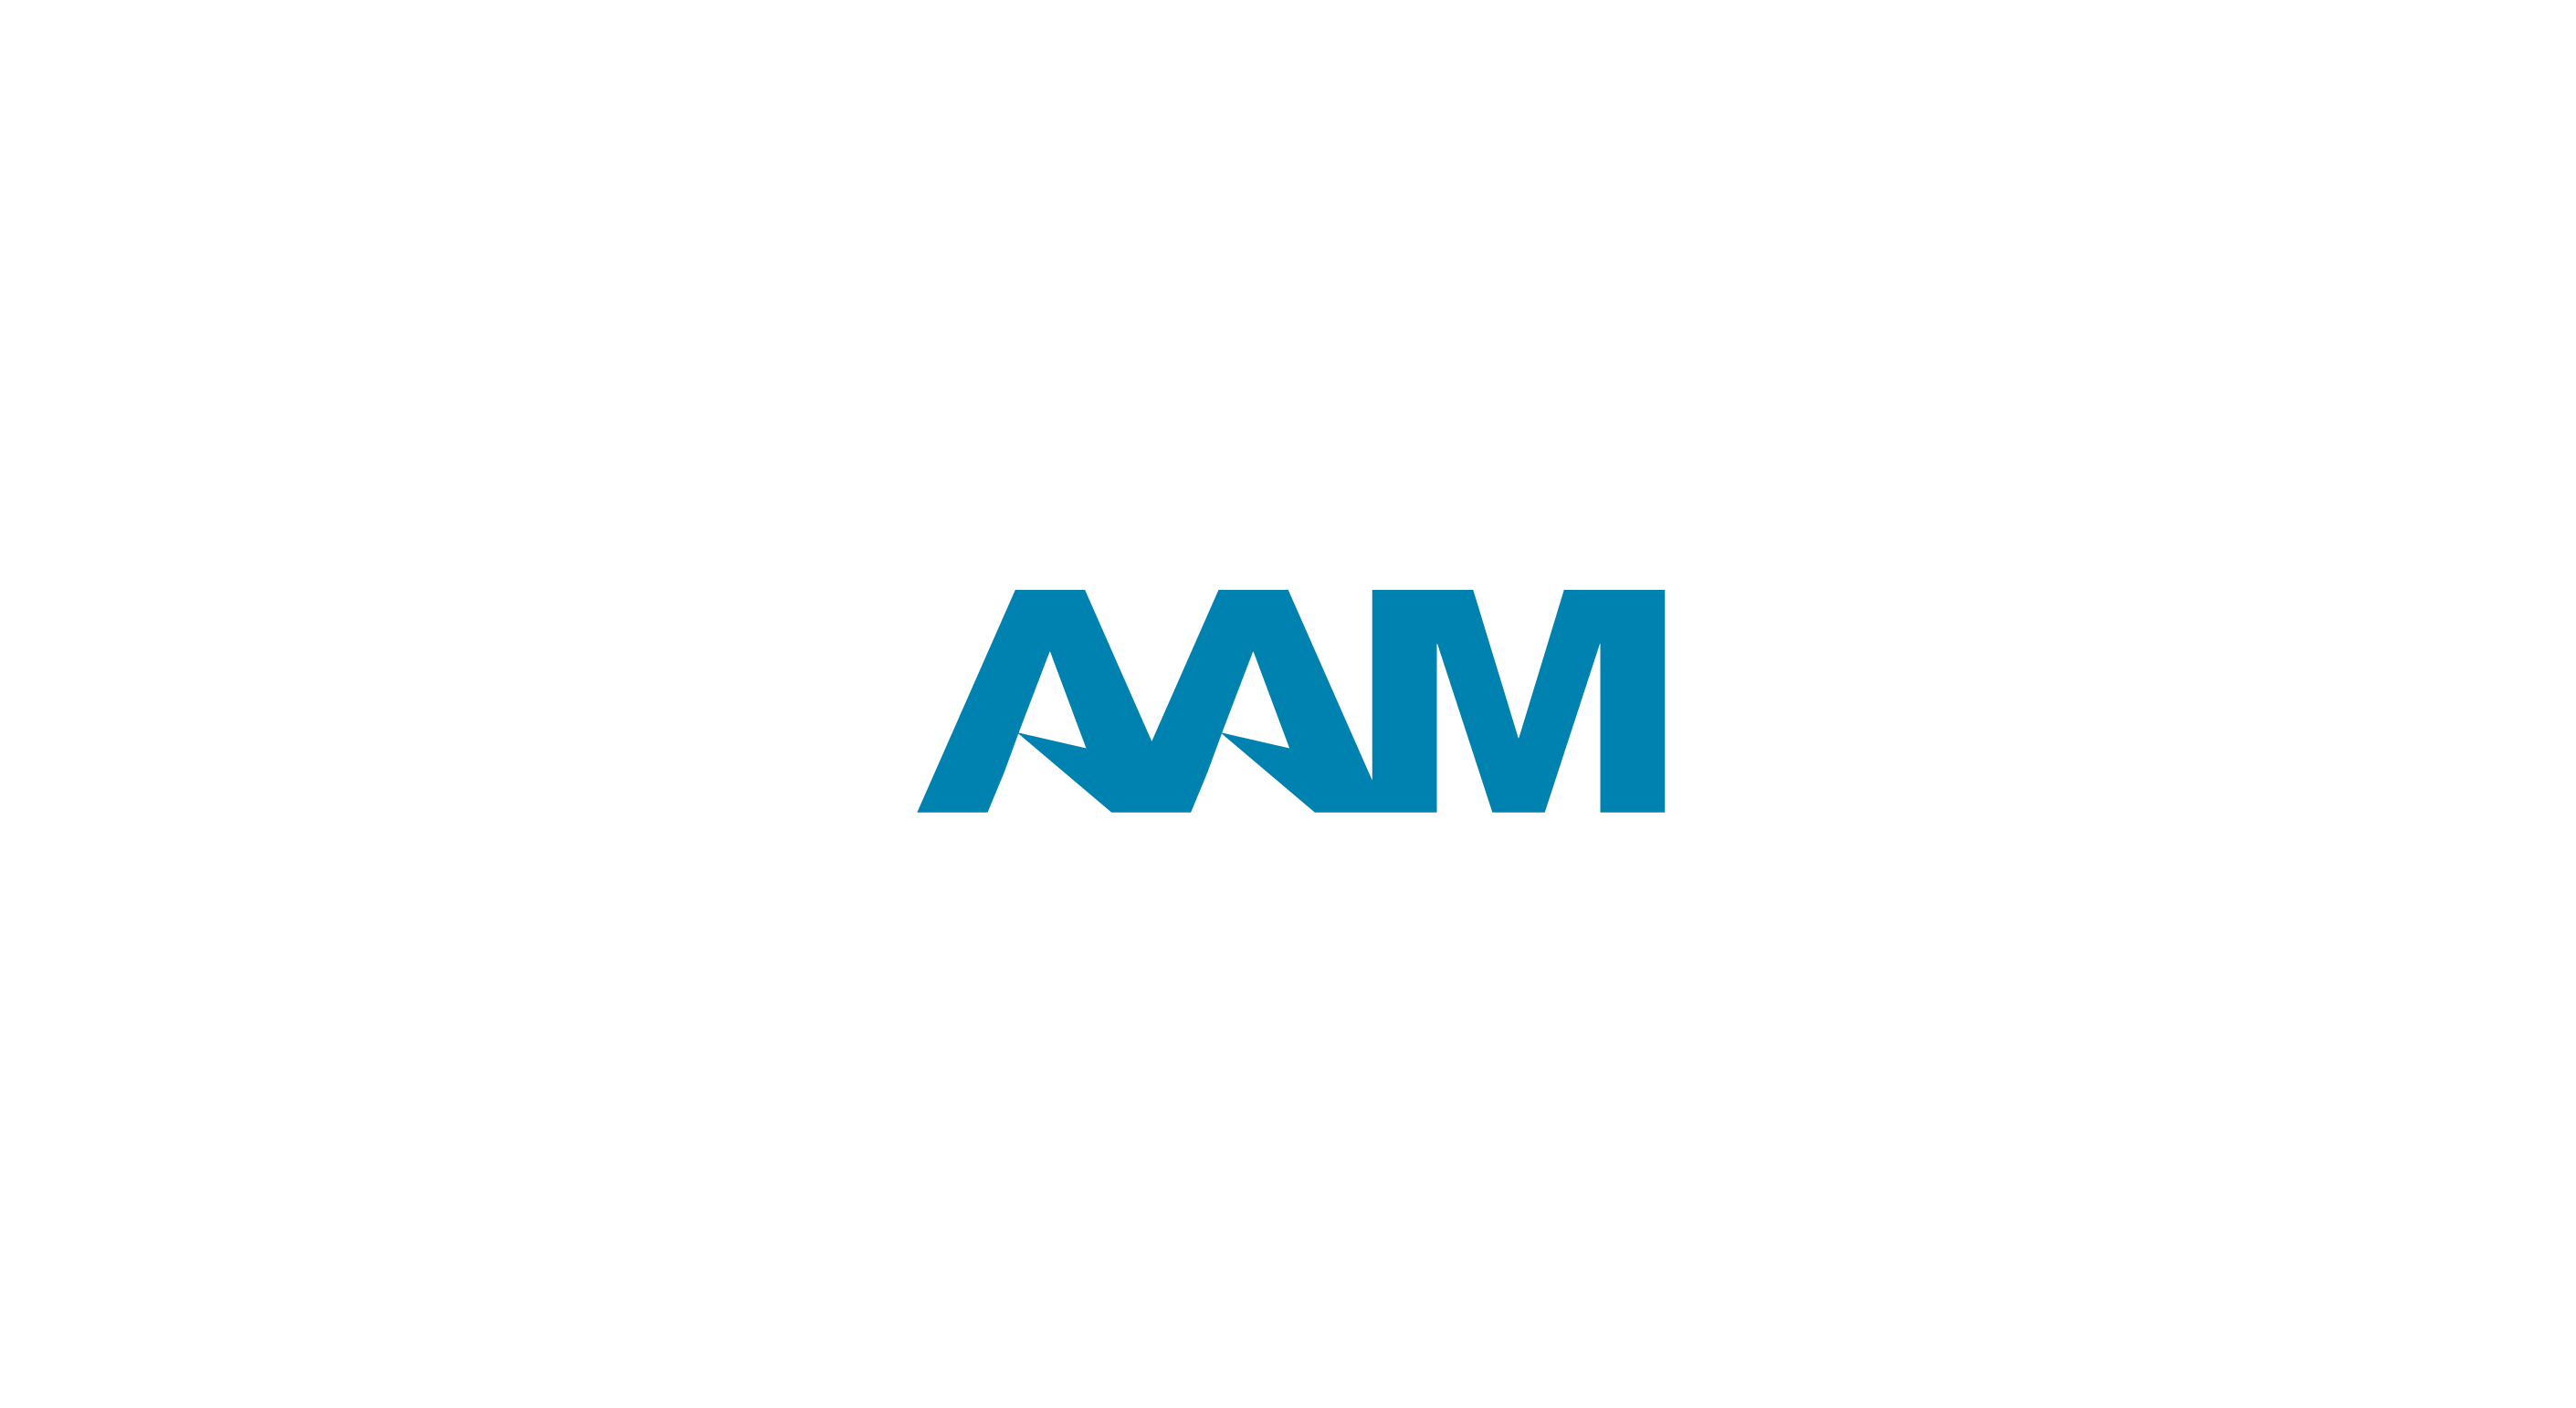 AAM Investment Management